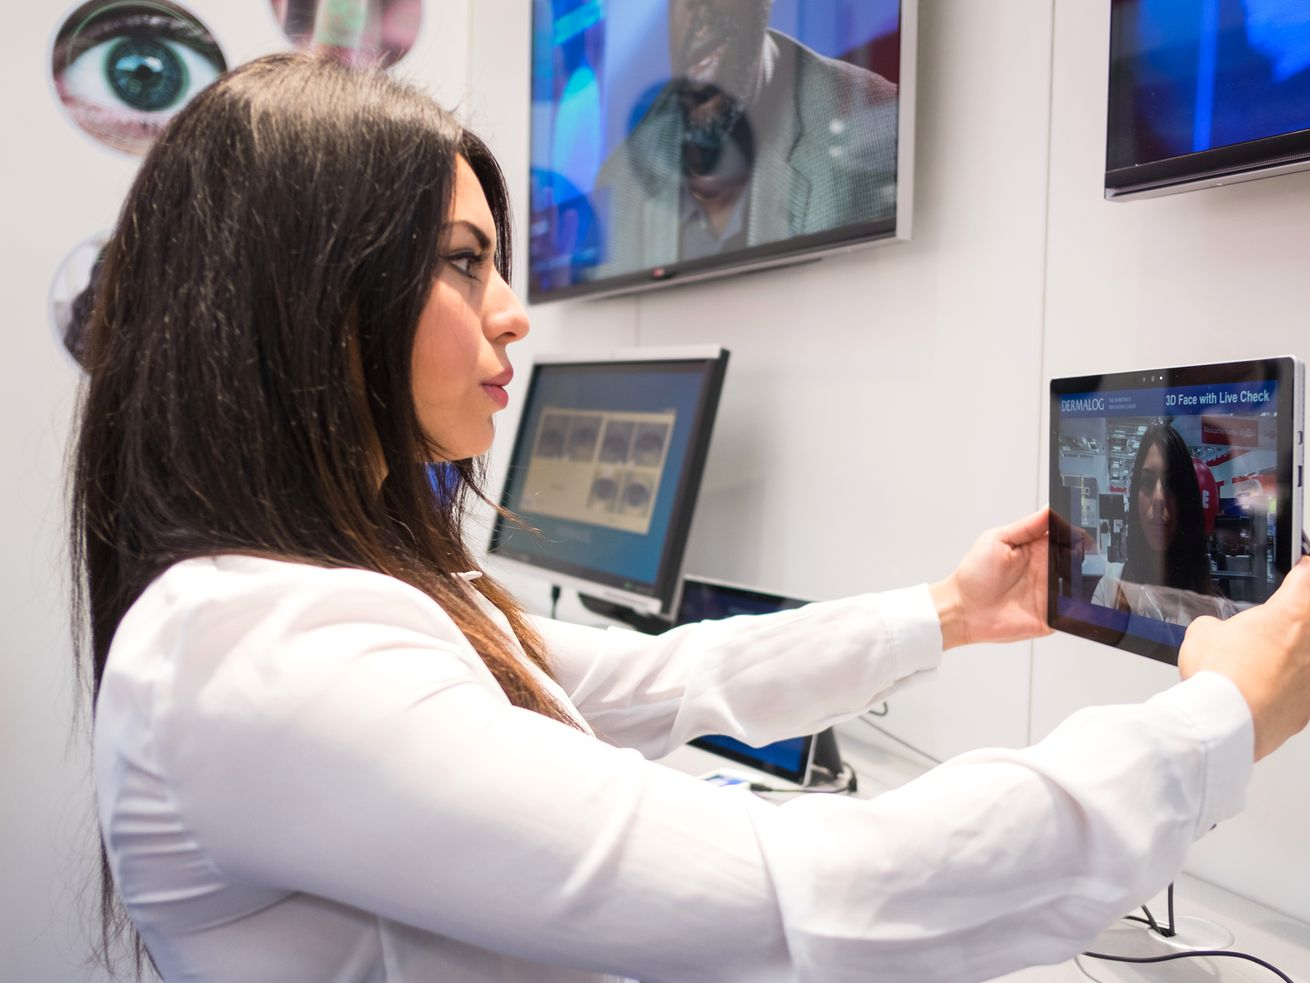 A woman holds a tablet featuring biometric 3D facial recognition software.